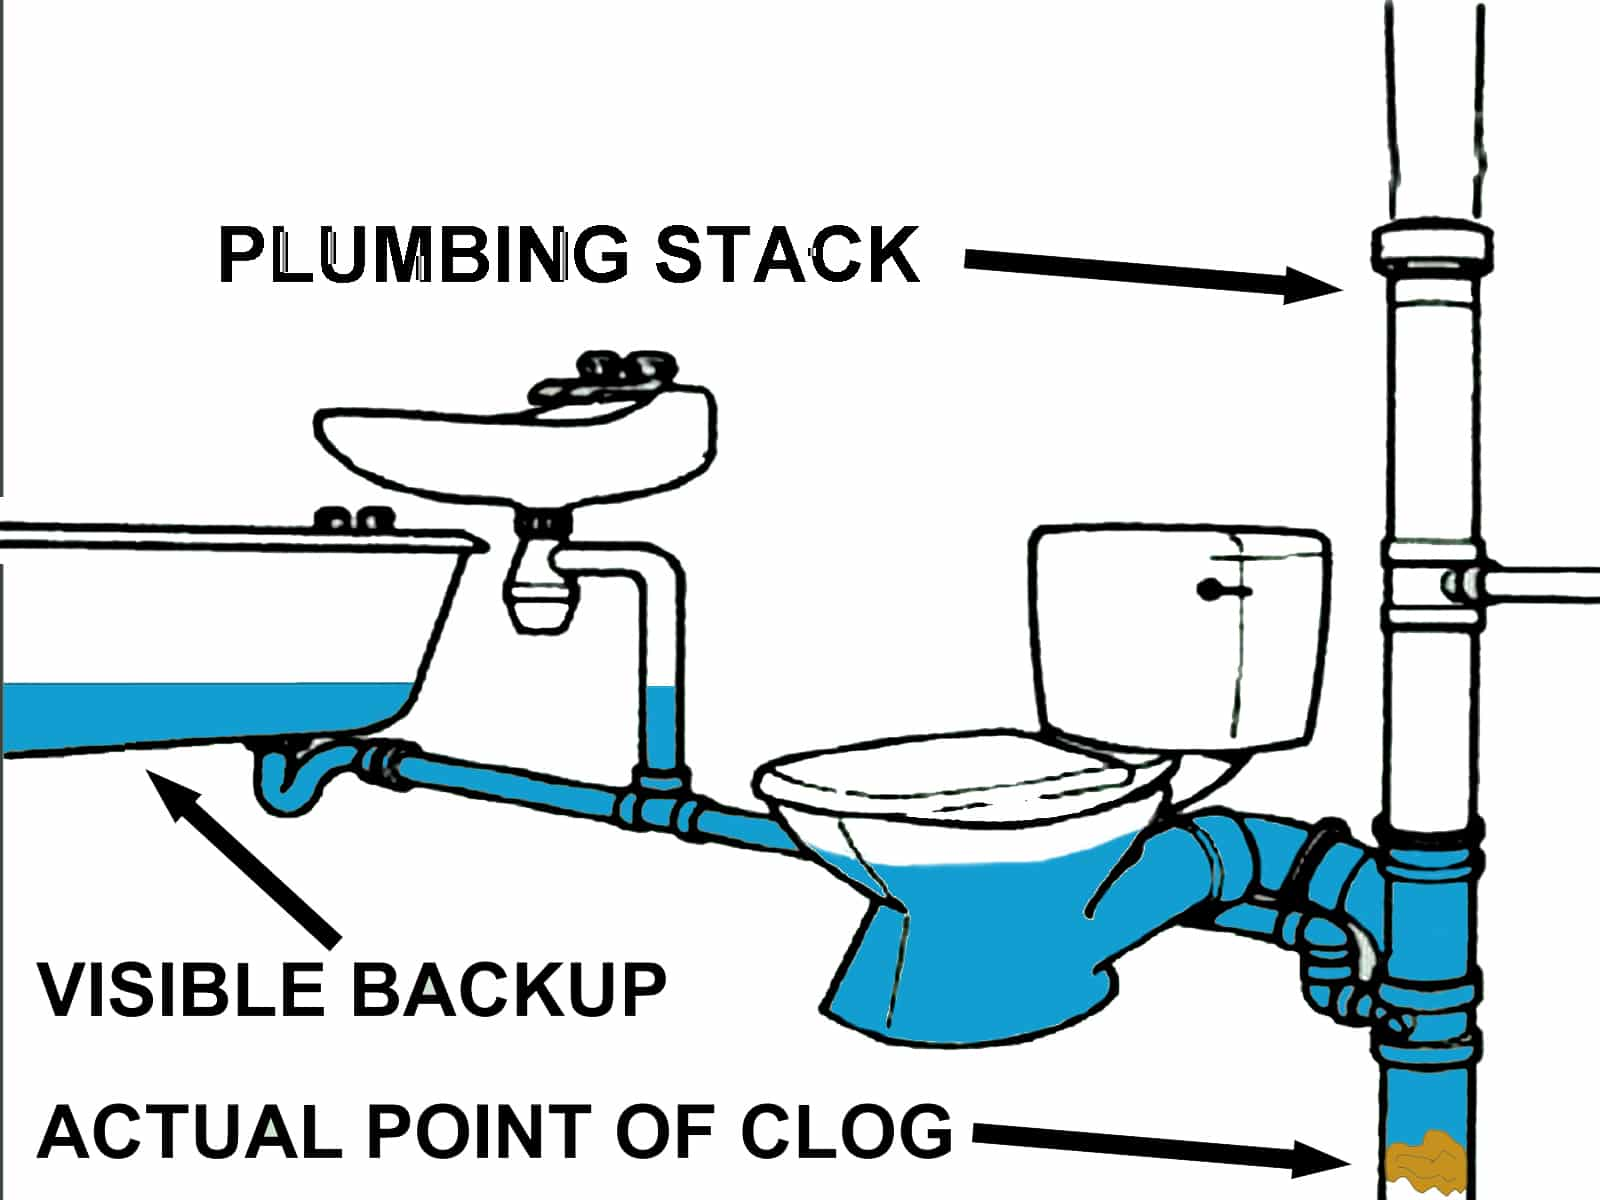 a clogged plumbing stack can affect